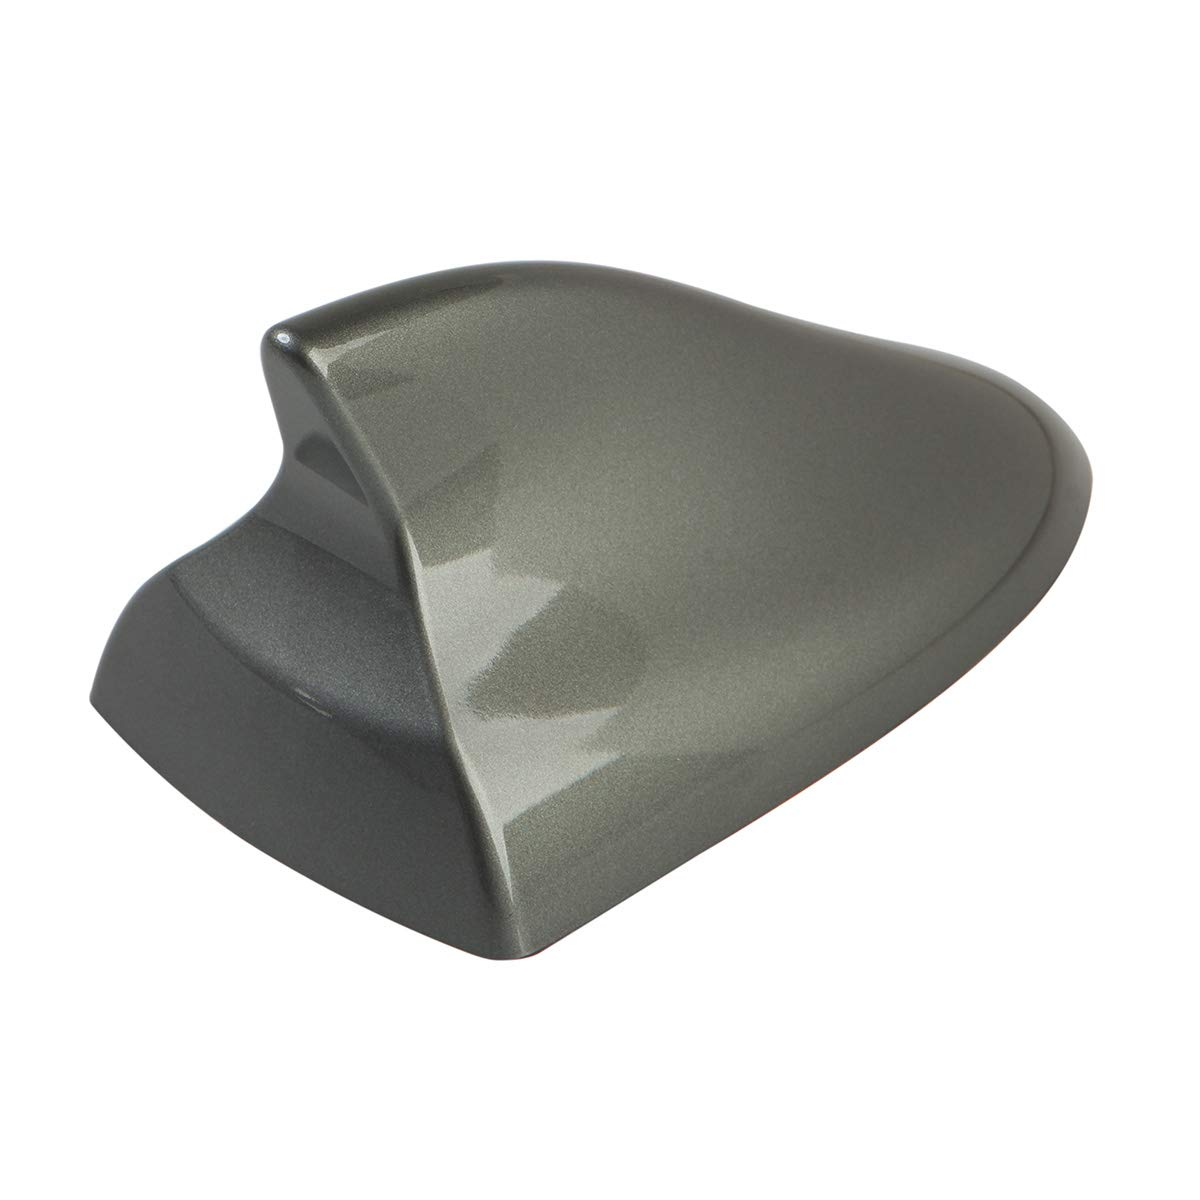 Focus 3 4 Auto Parts Modified Replacement Accessories Focus-RS mk3 and Focus-ST. Kuga Ramble- Luxurious Shark Fin Antenna Covers Car Radio Aerials Cover Explorer Advanced Style, Gray for Ford Everest